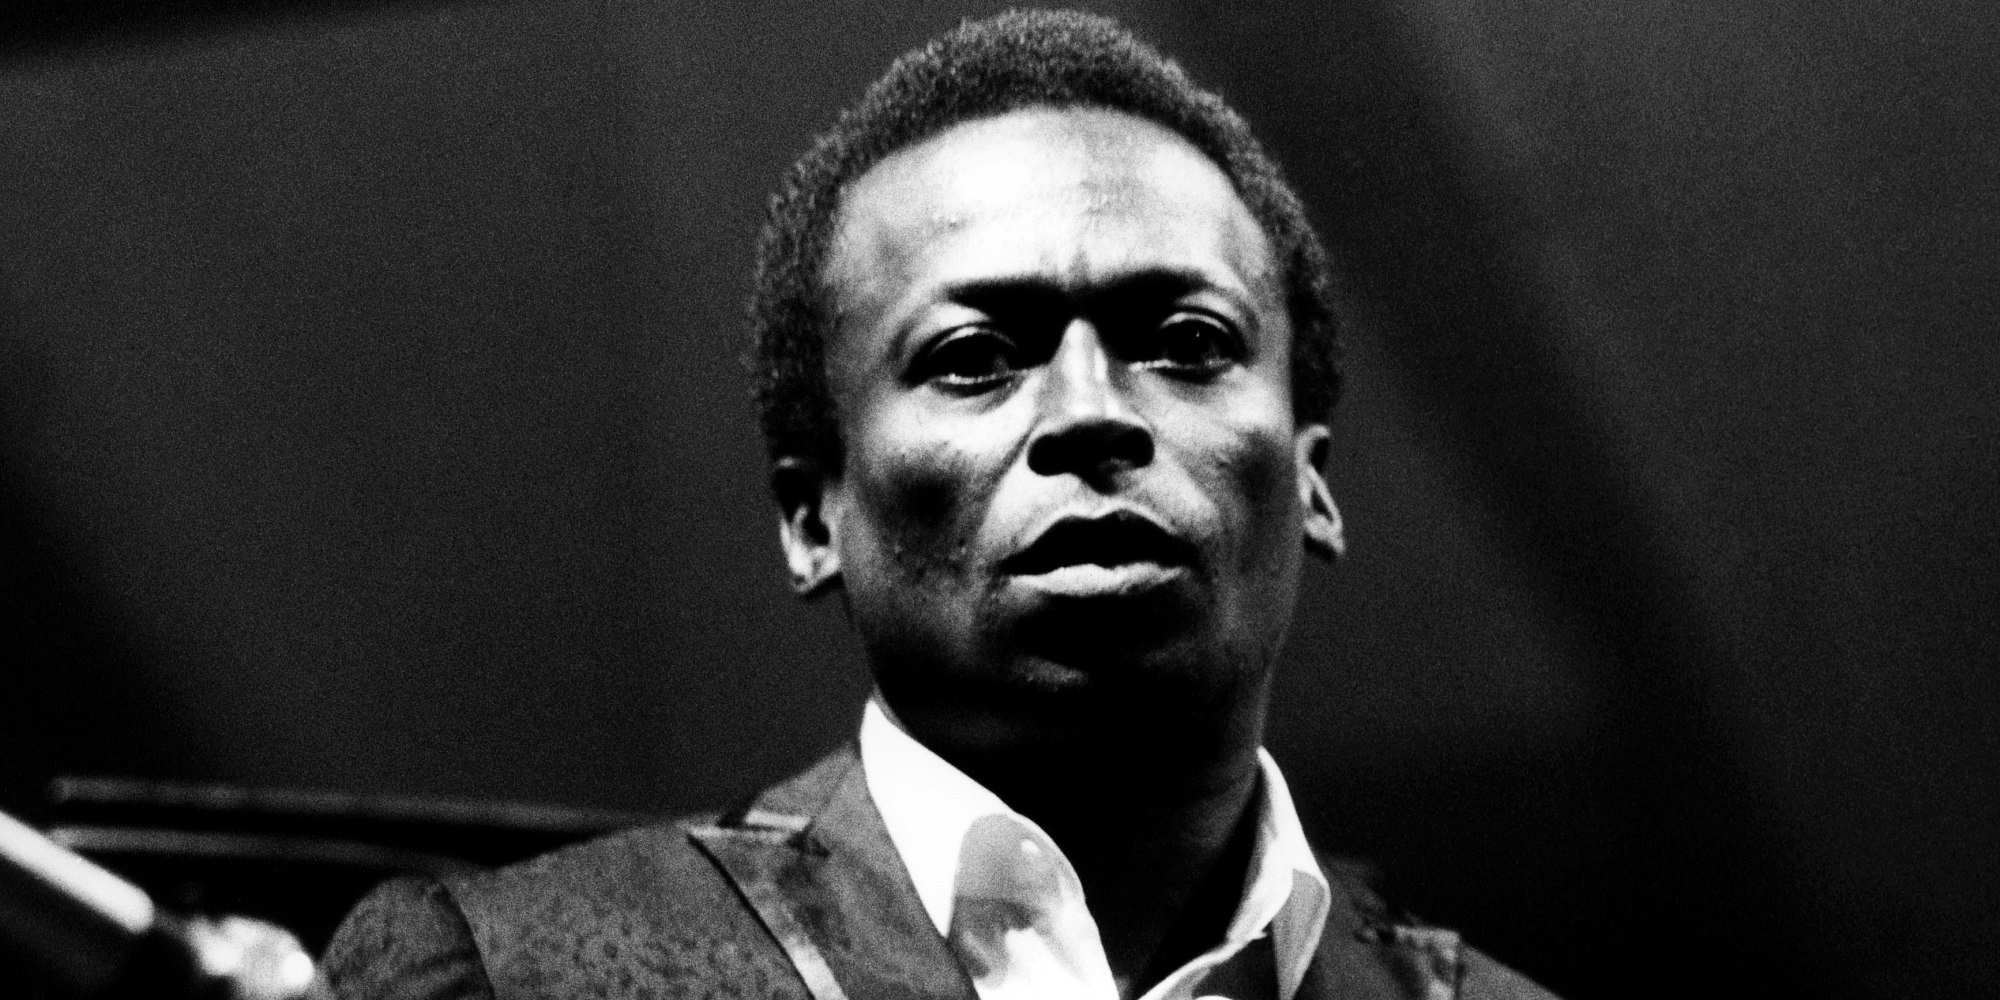 Essentials: Miles Davis' Kind of Blue (1959)